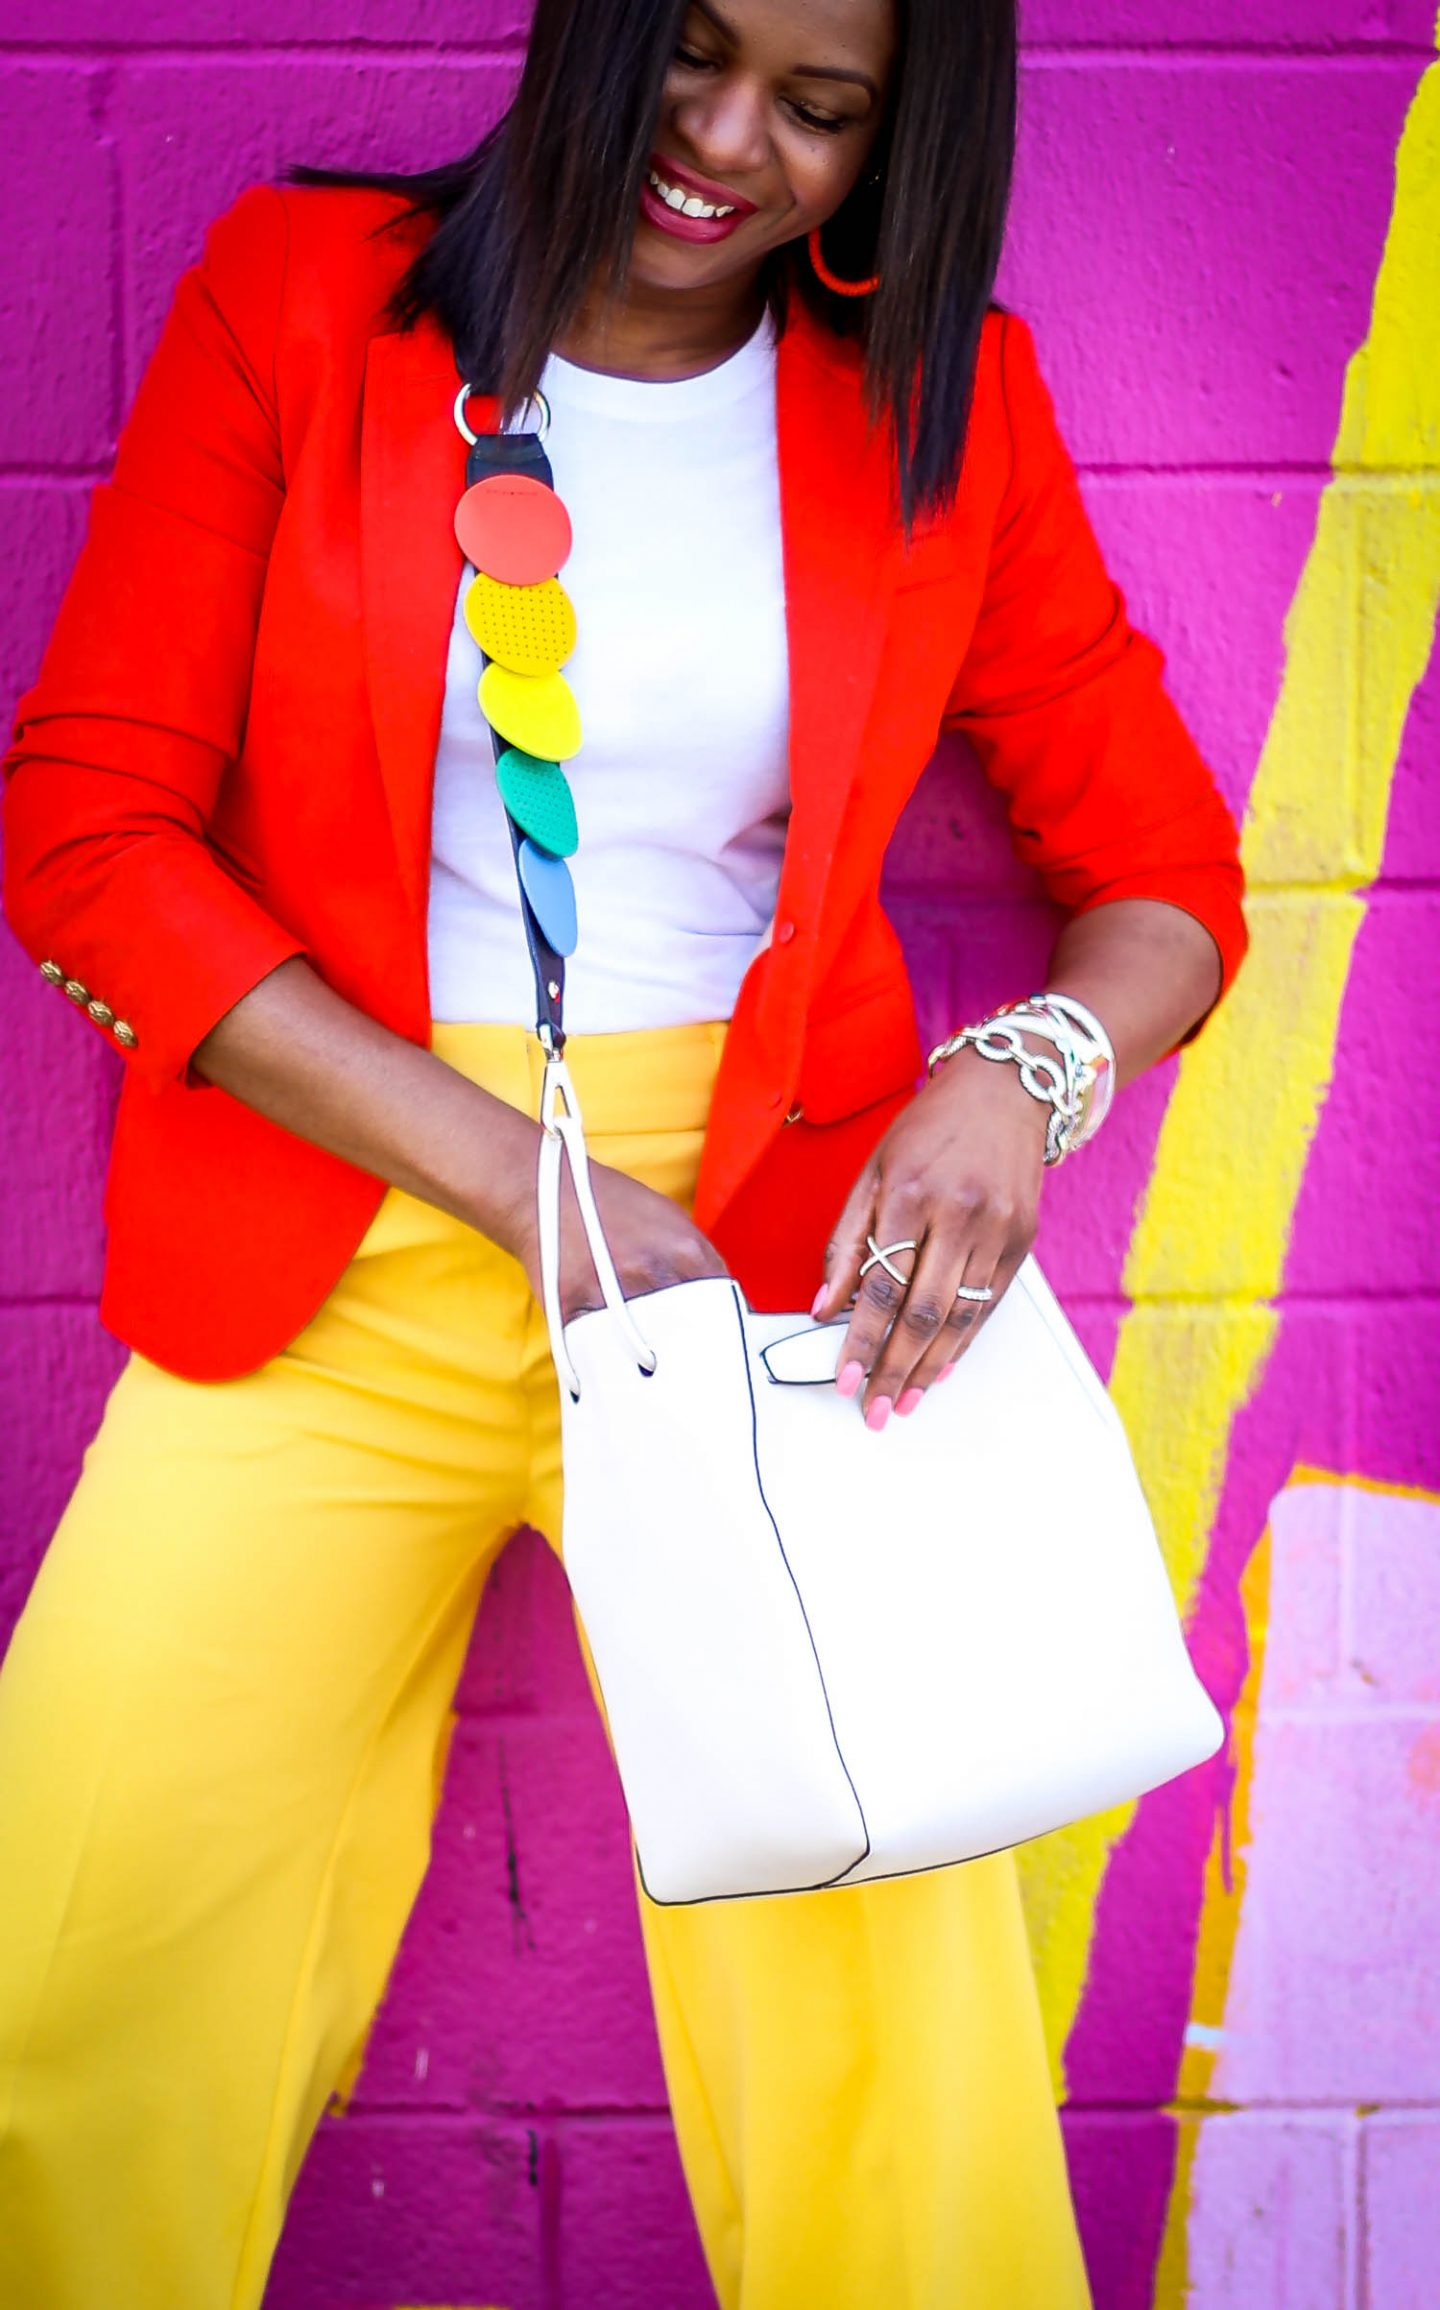 THE BLOCK IS HOT – HOW TO COLOR BLOCK THIS SPRING